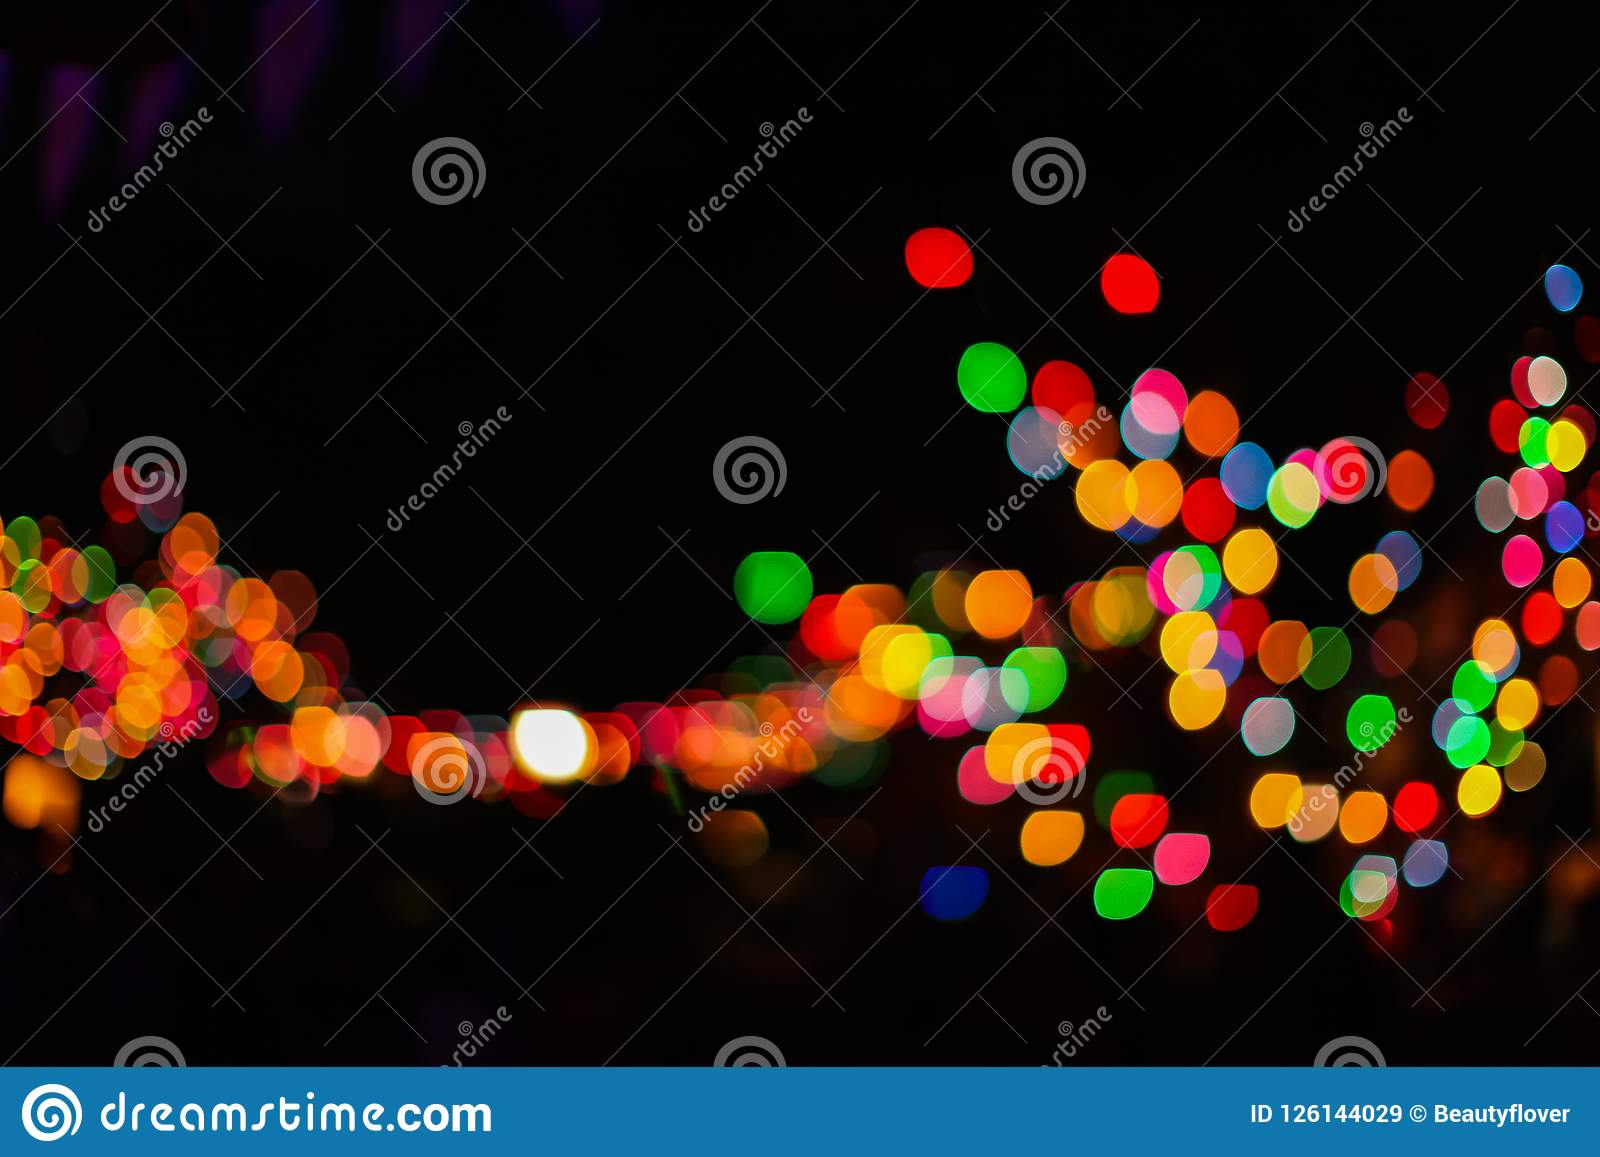 download defocus the christmas city at night colorful colored garland on the trees abstract